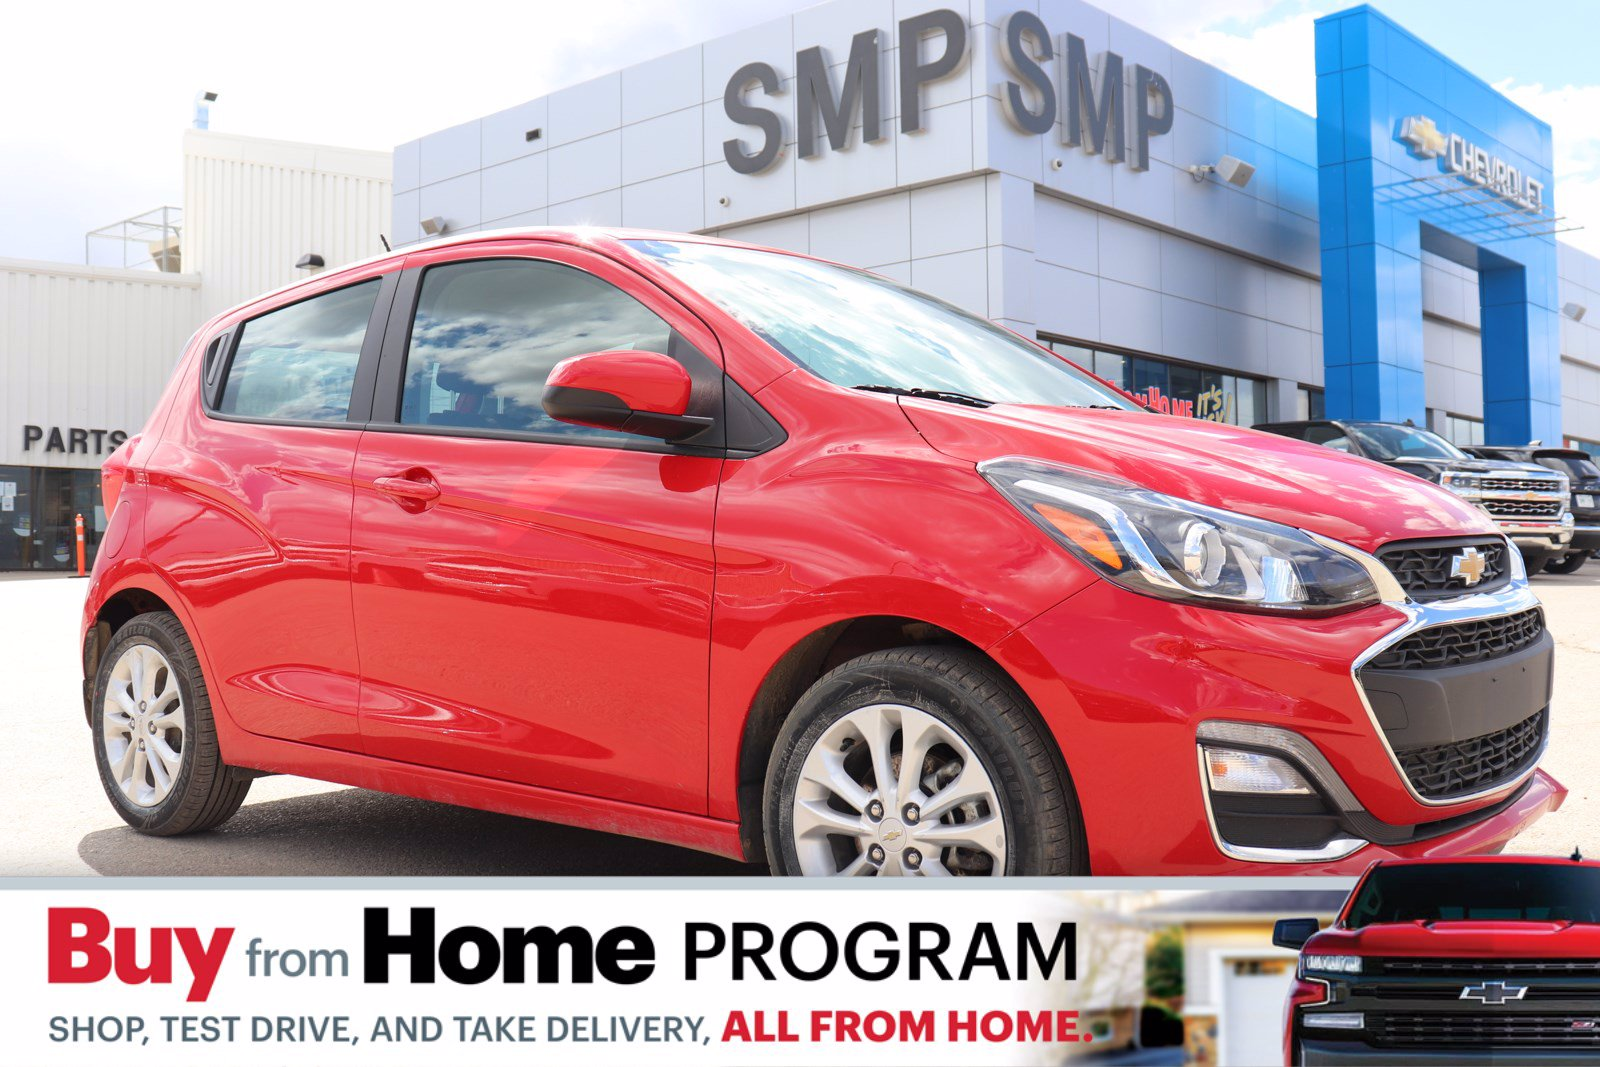 Certified Pre-Owned 2019 Chevrolet Spark LT- AC, Back Up Camera, New Tires, Alloys